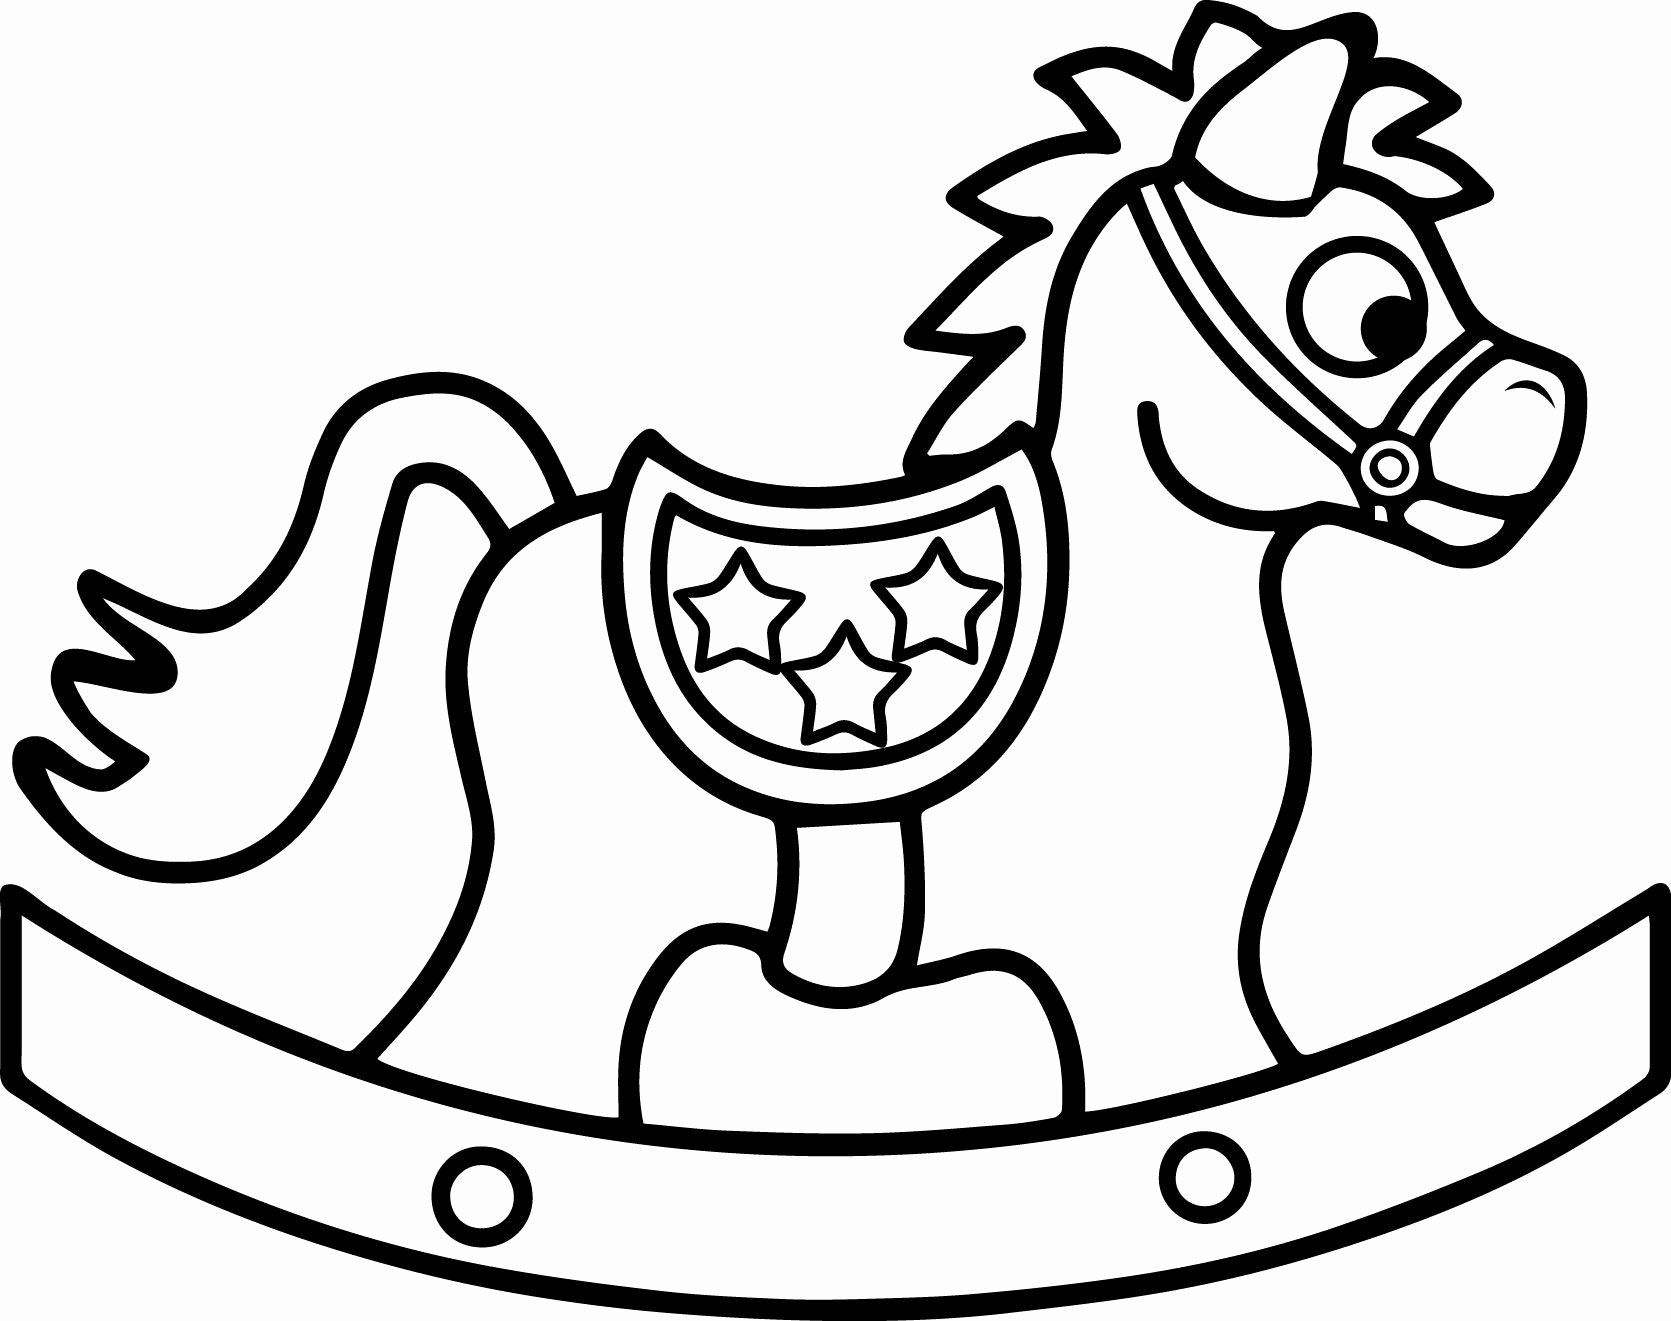 Christmas Horse Coloring Page New Rocking Horse Coloring Pages At Getdrawings Horse Coloring Pages Horse Coloring Mickey Mouse Coloring Pages